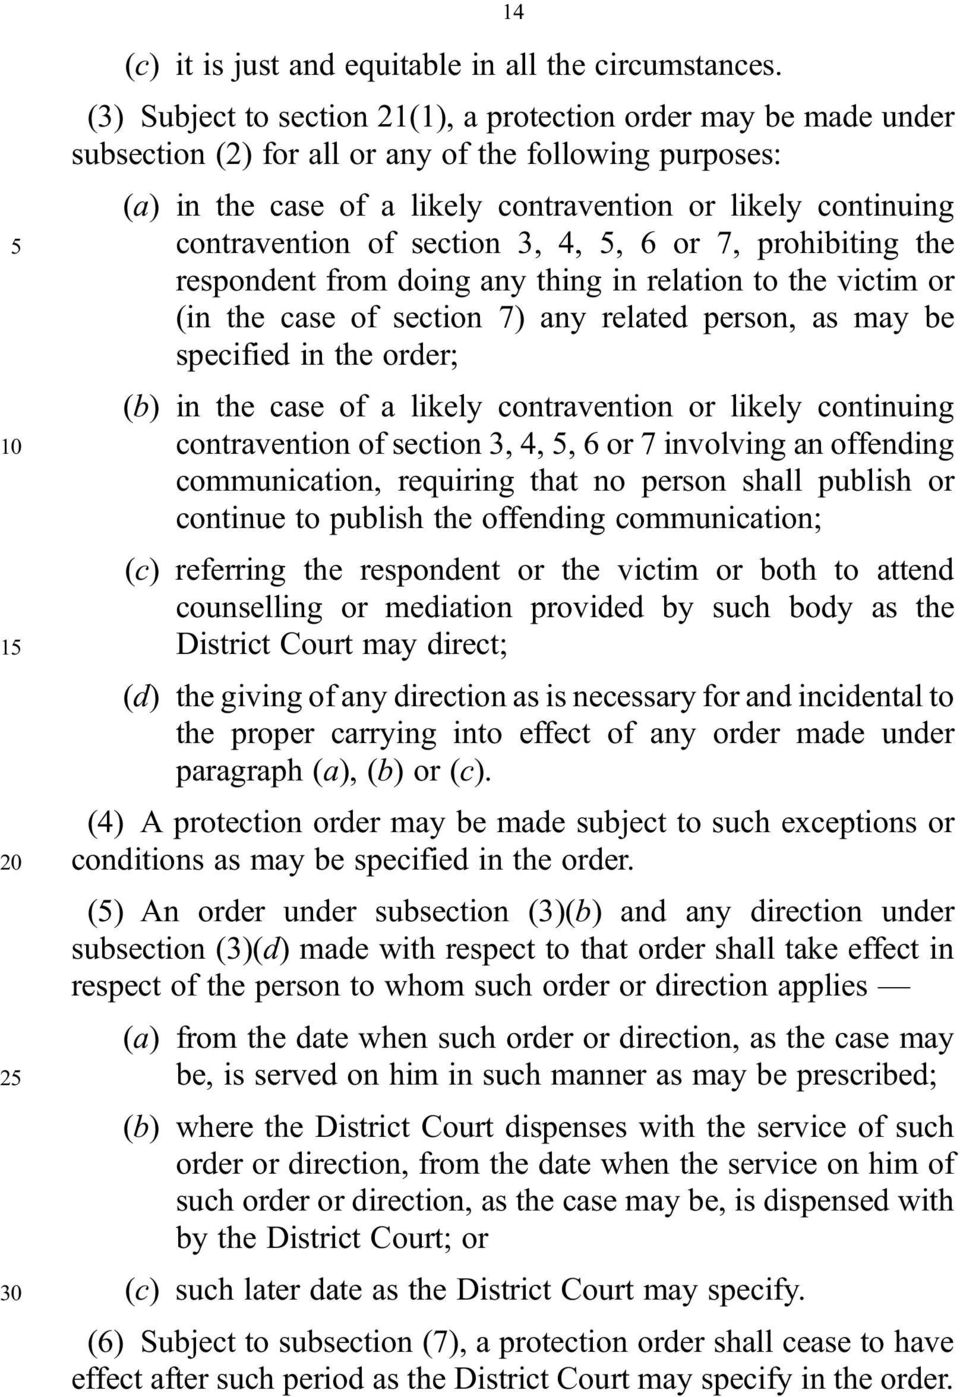 contravention of section 3, 4, 5, 6 or 7, prohibiting the respondent from doing any thing in relation to the victim or (in the case of section 7) any related person, as may be specified in the order;